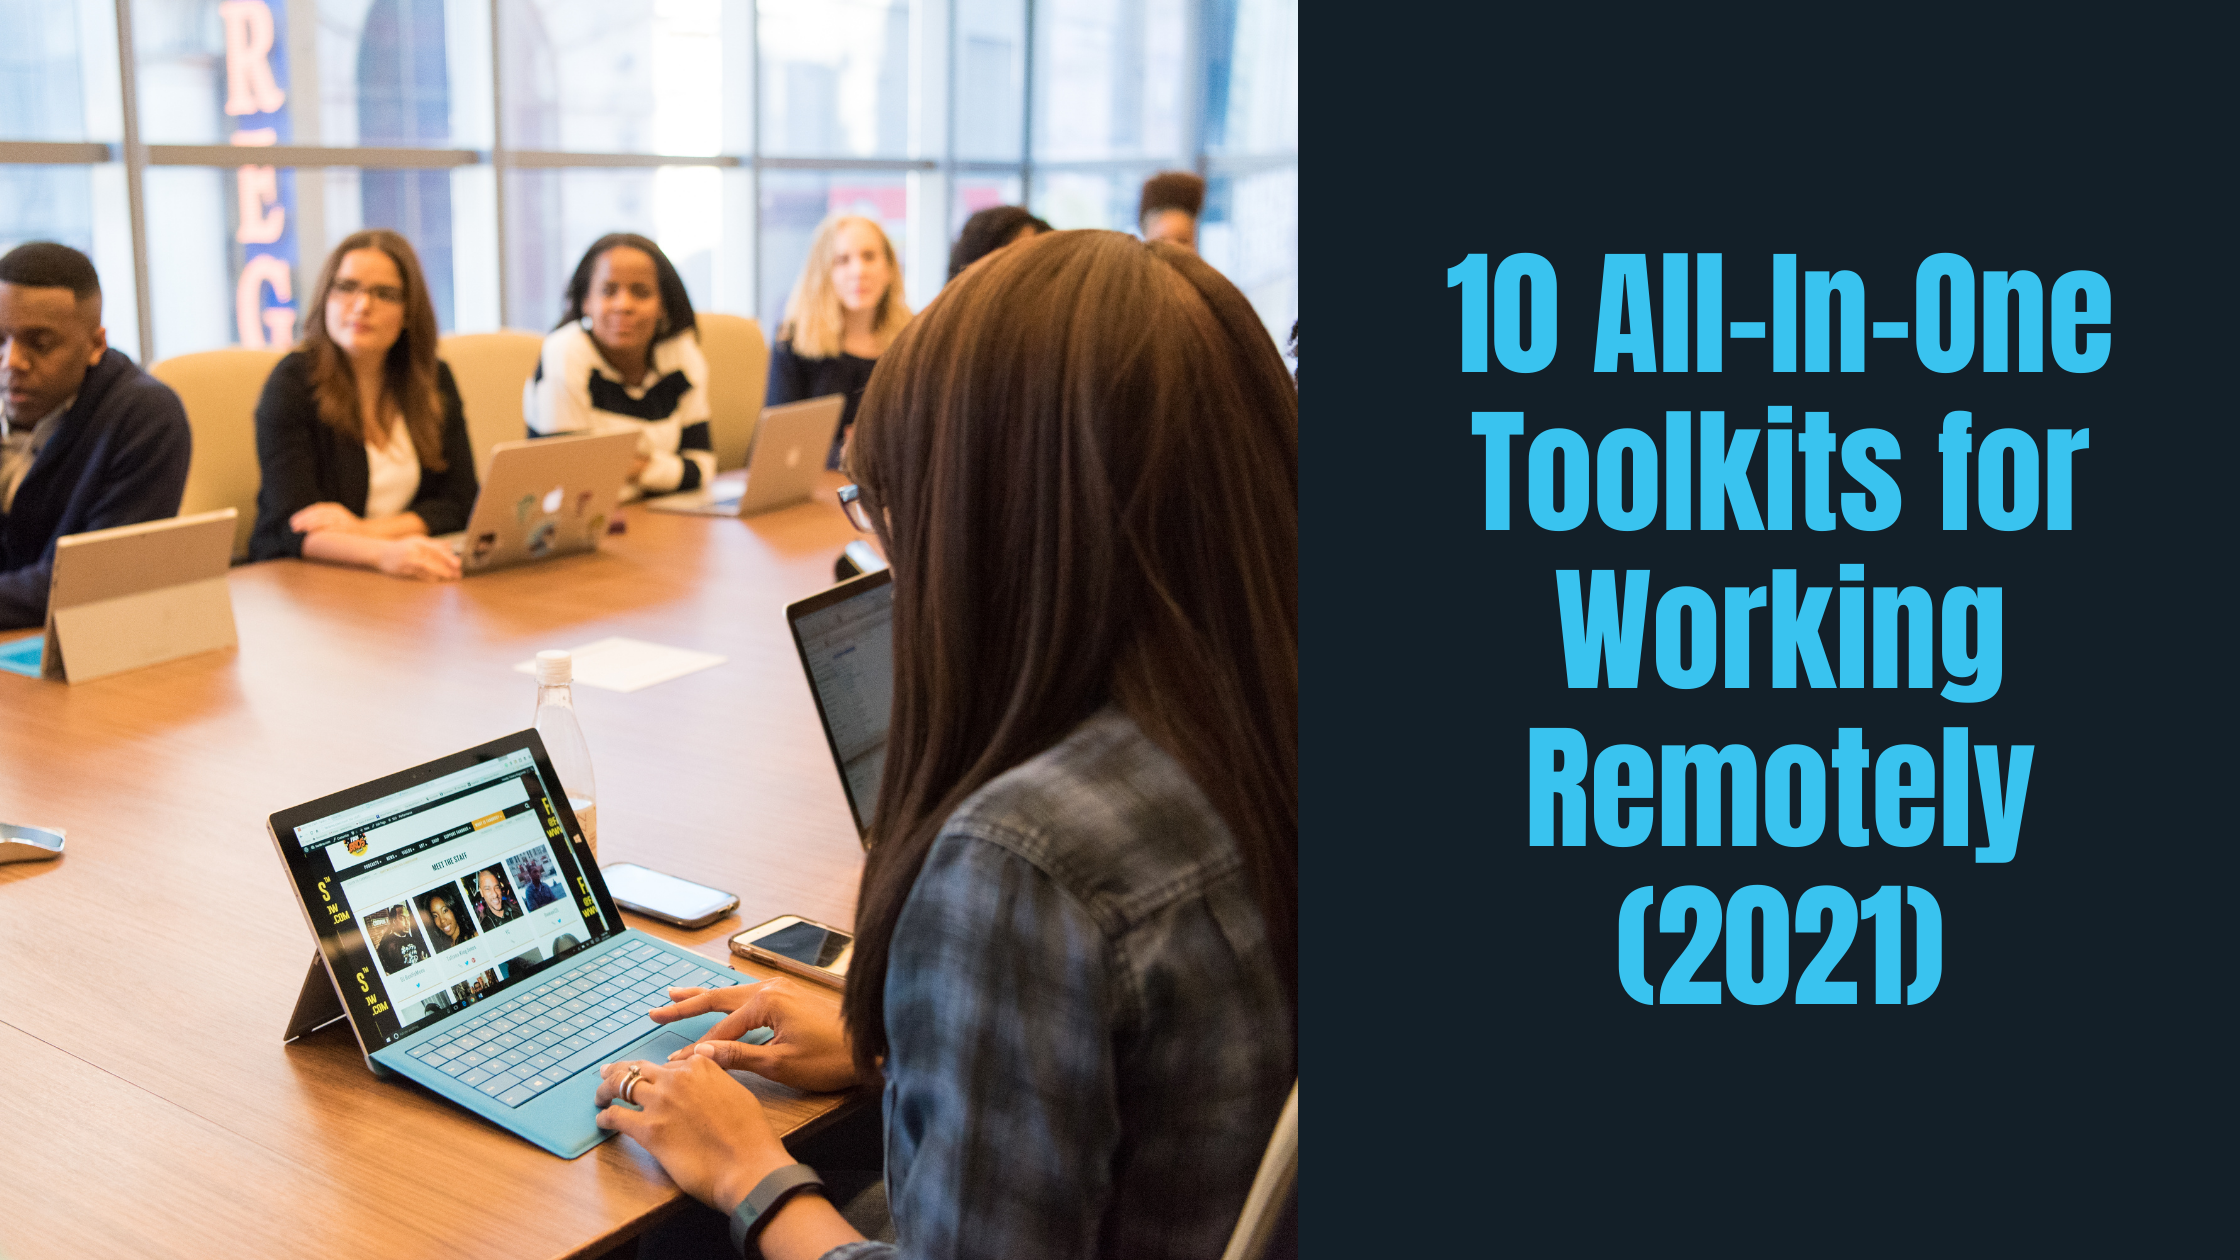 10 All-In-One Toolkits for Working Remotely (2021).